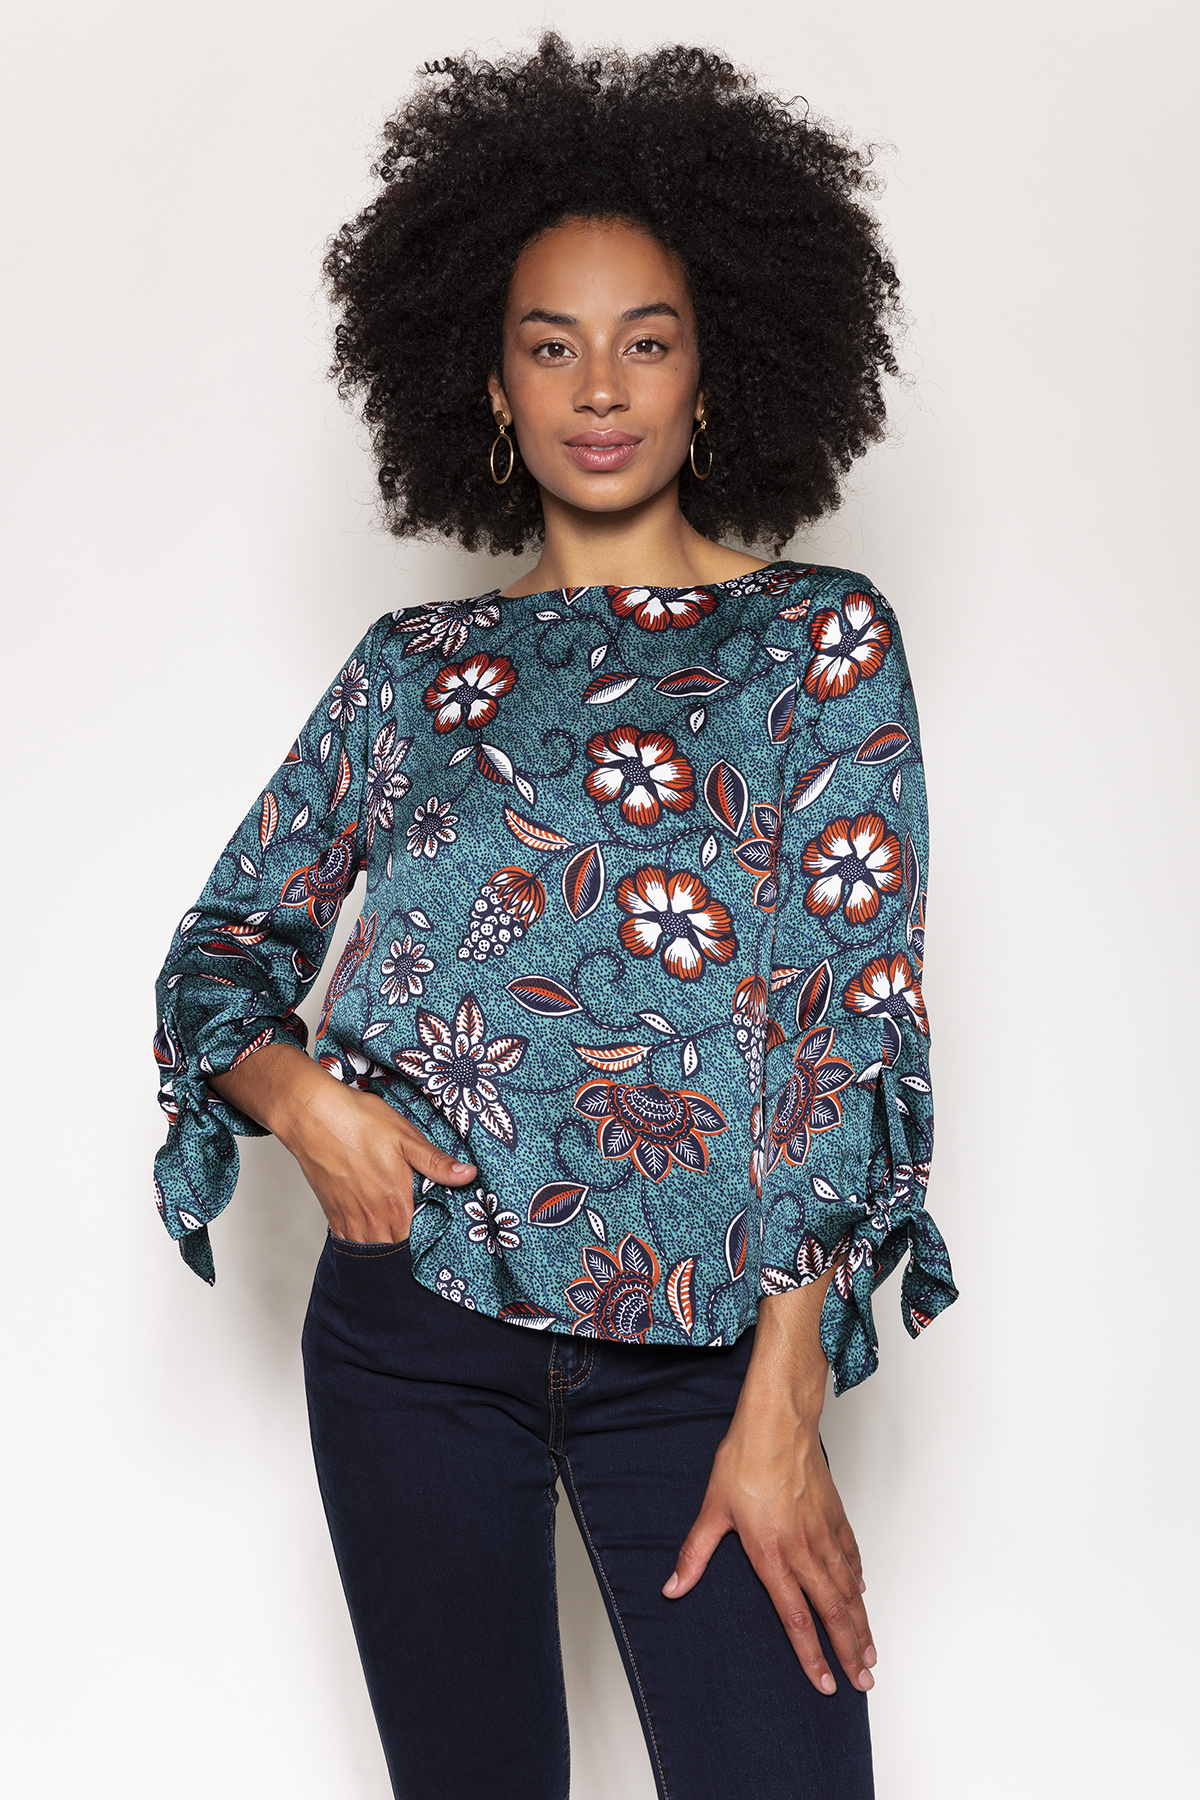 New Arrivals at Carraig Donn